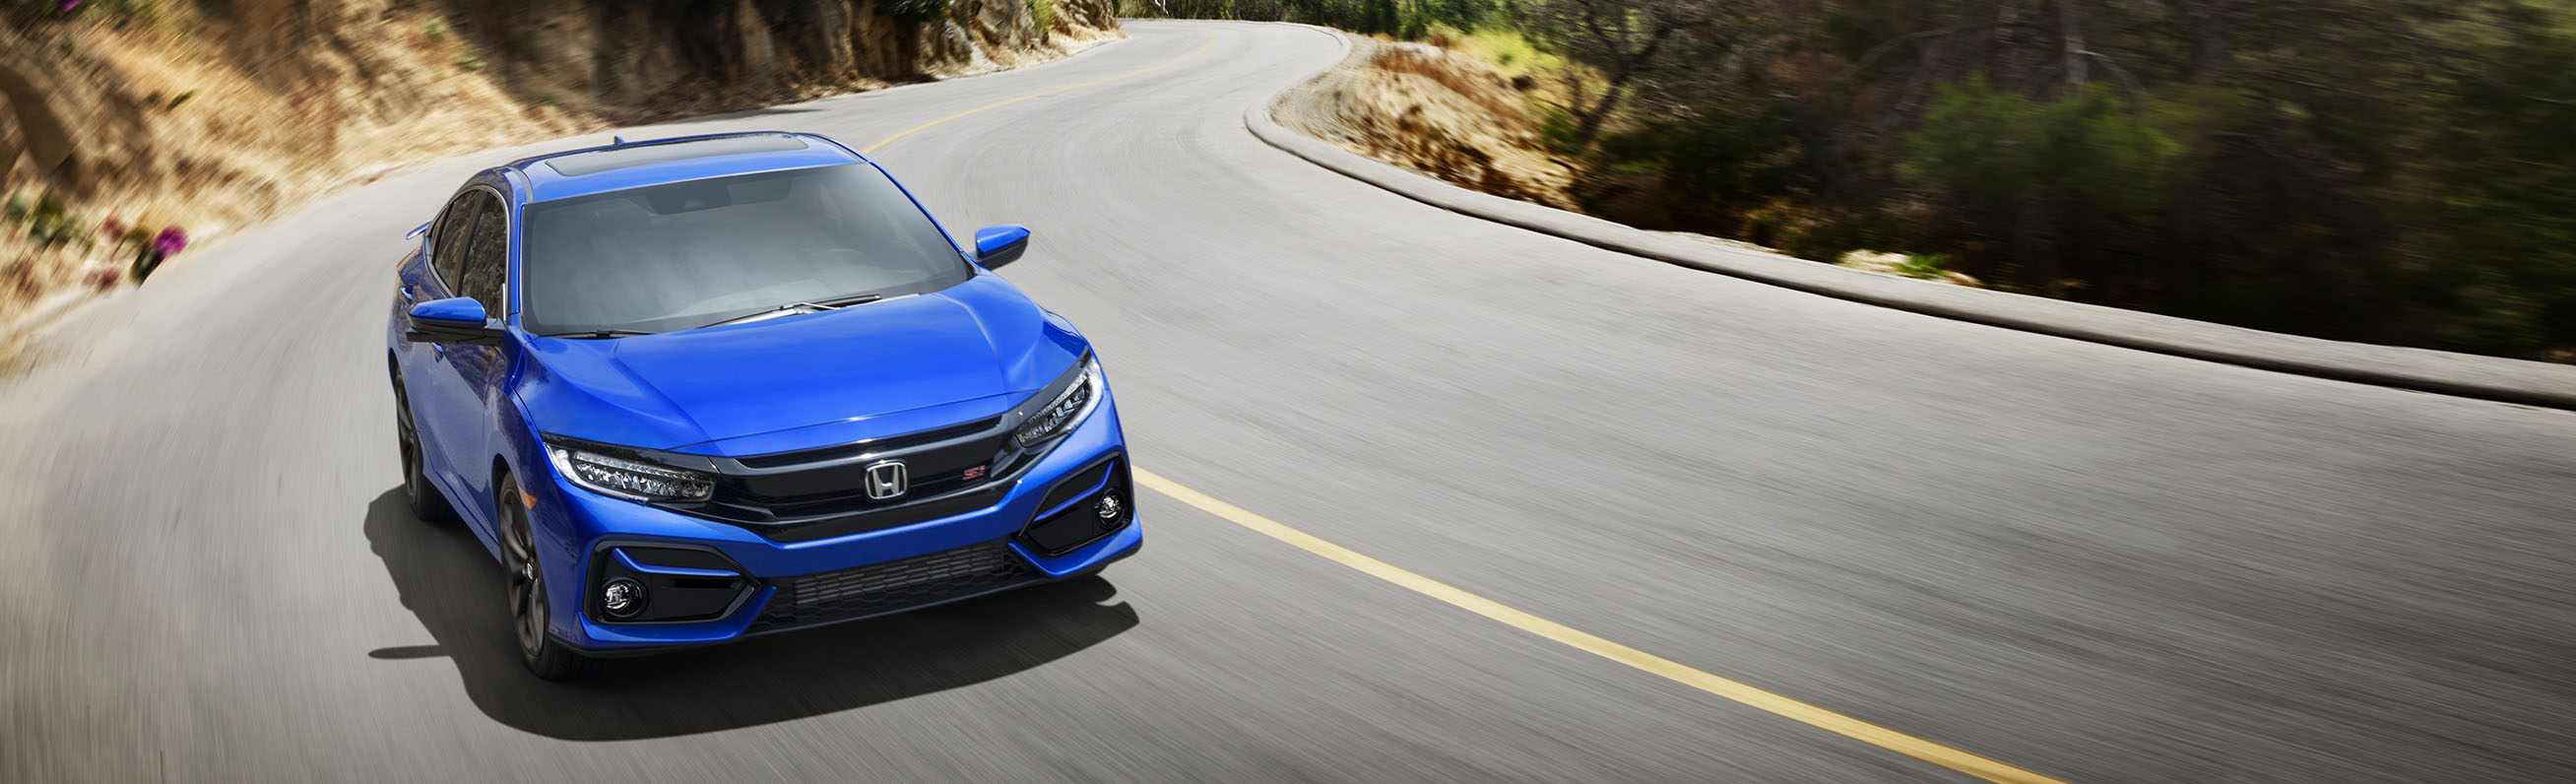 2020 Honda Civic SI.jpg